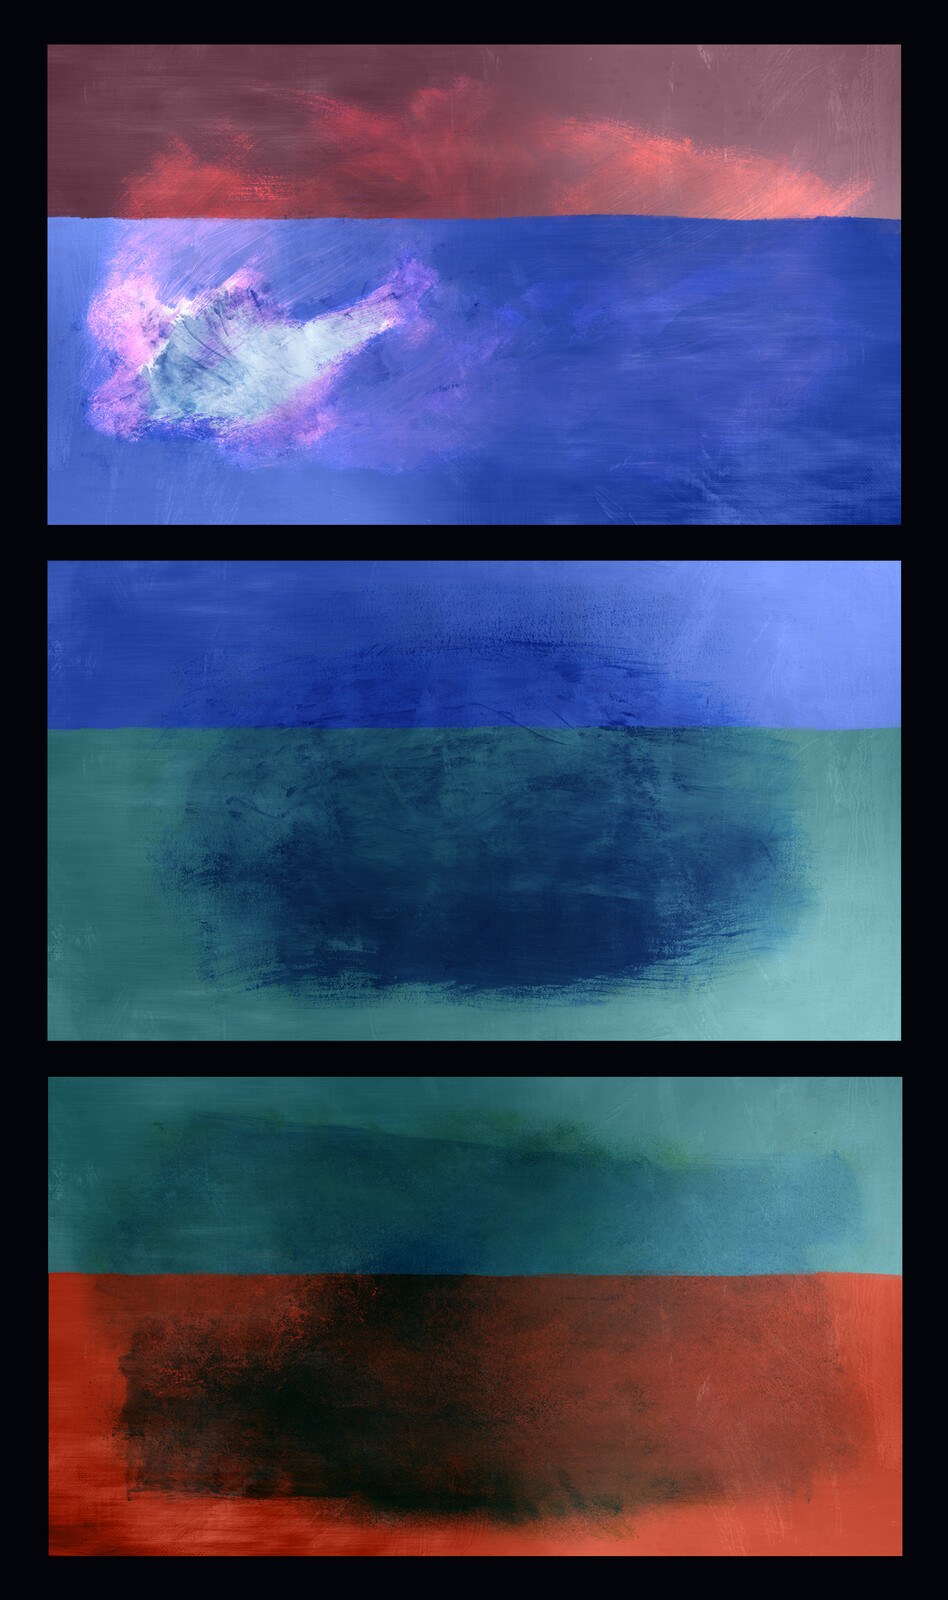 I did all the hallway paintings used in the movie. This series of 3 abstract paintings was my favorite.